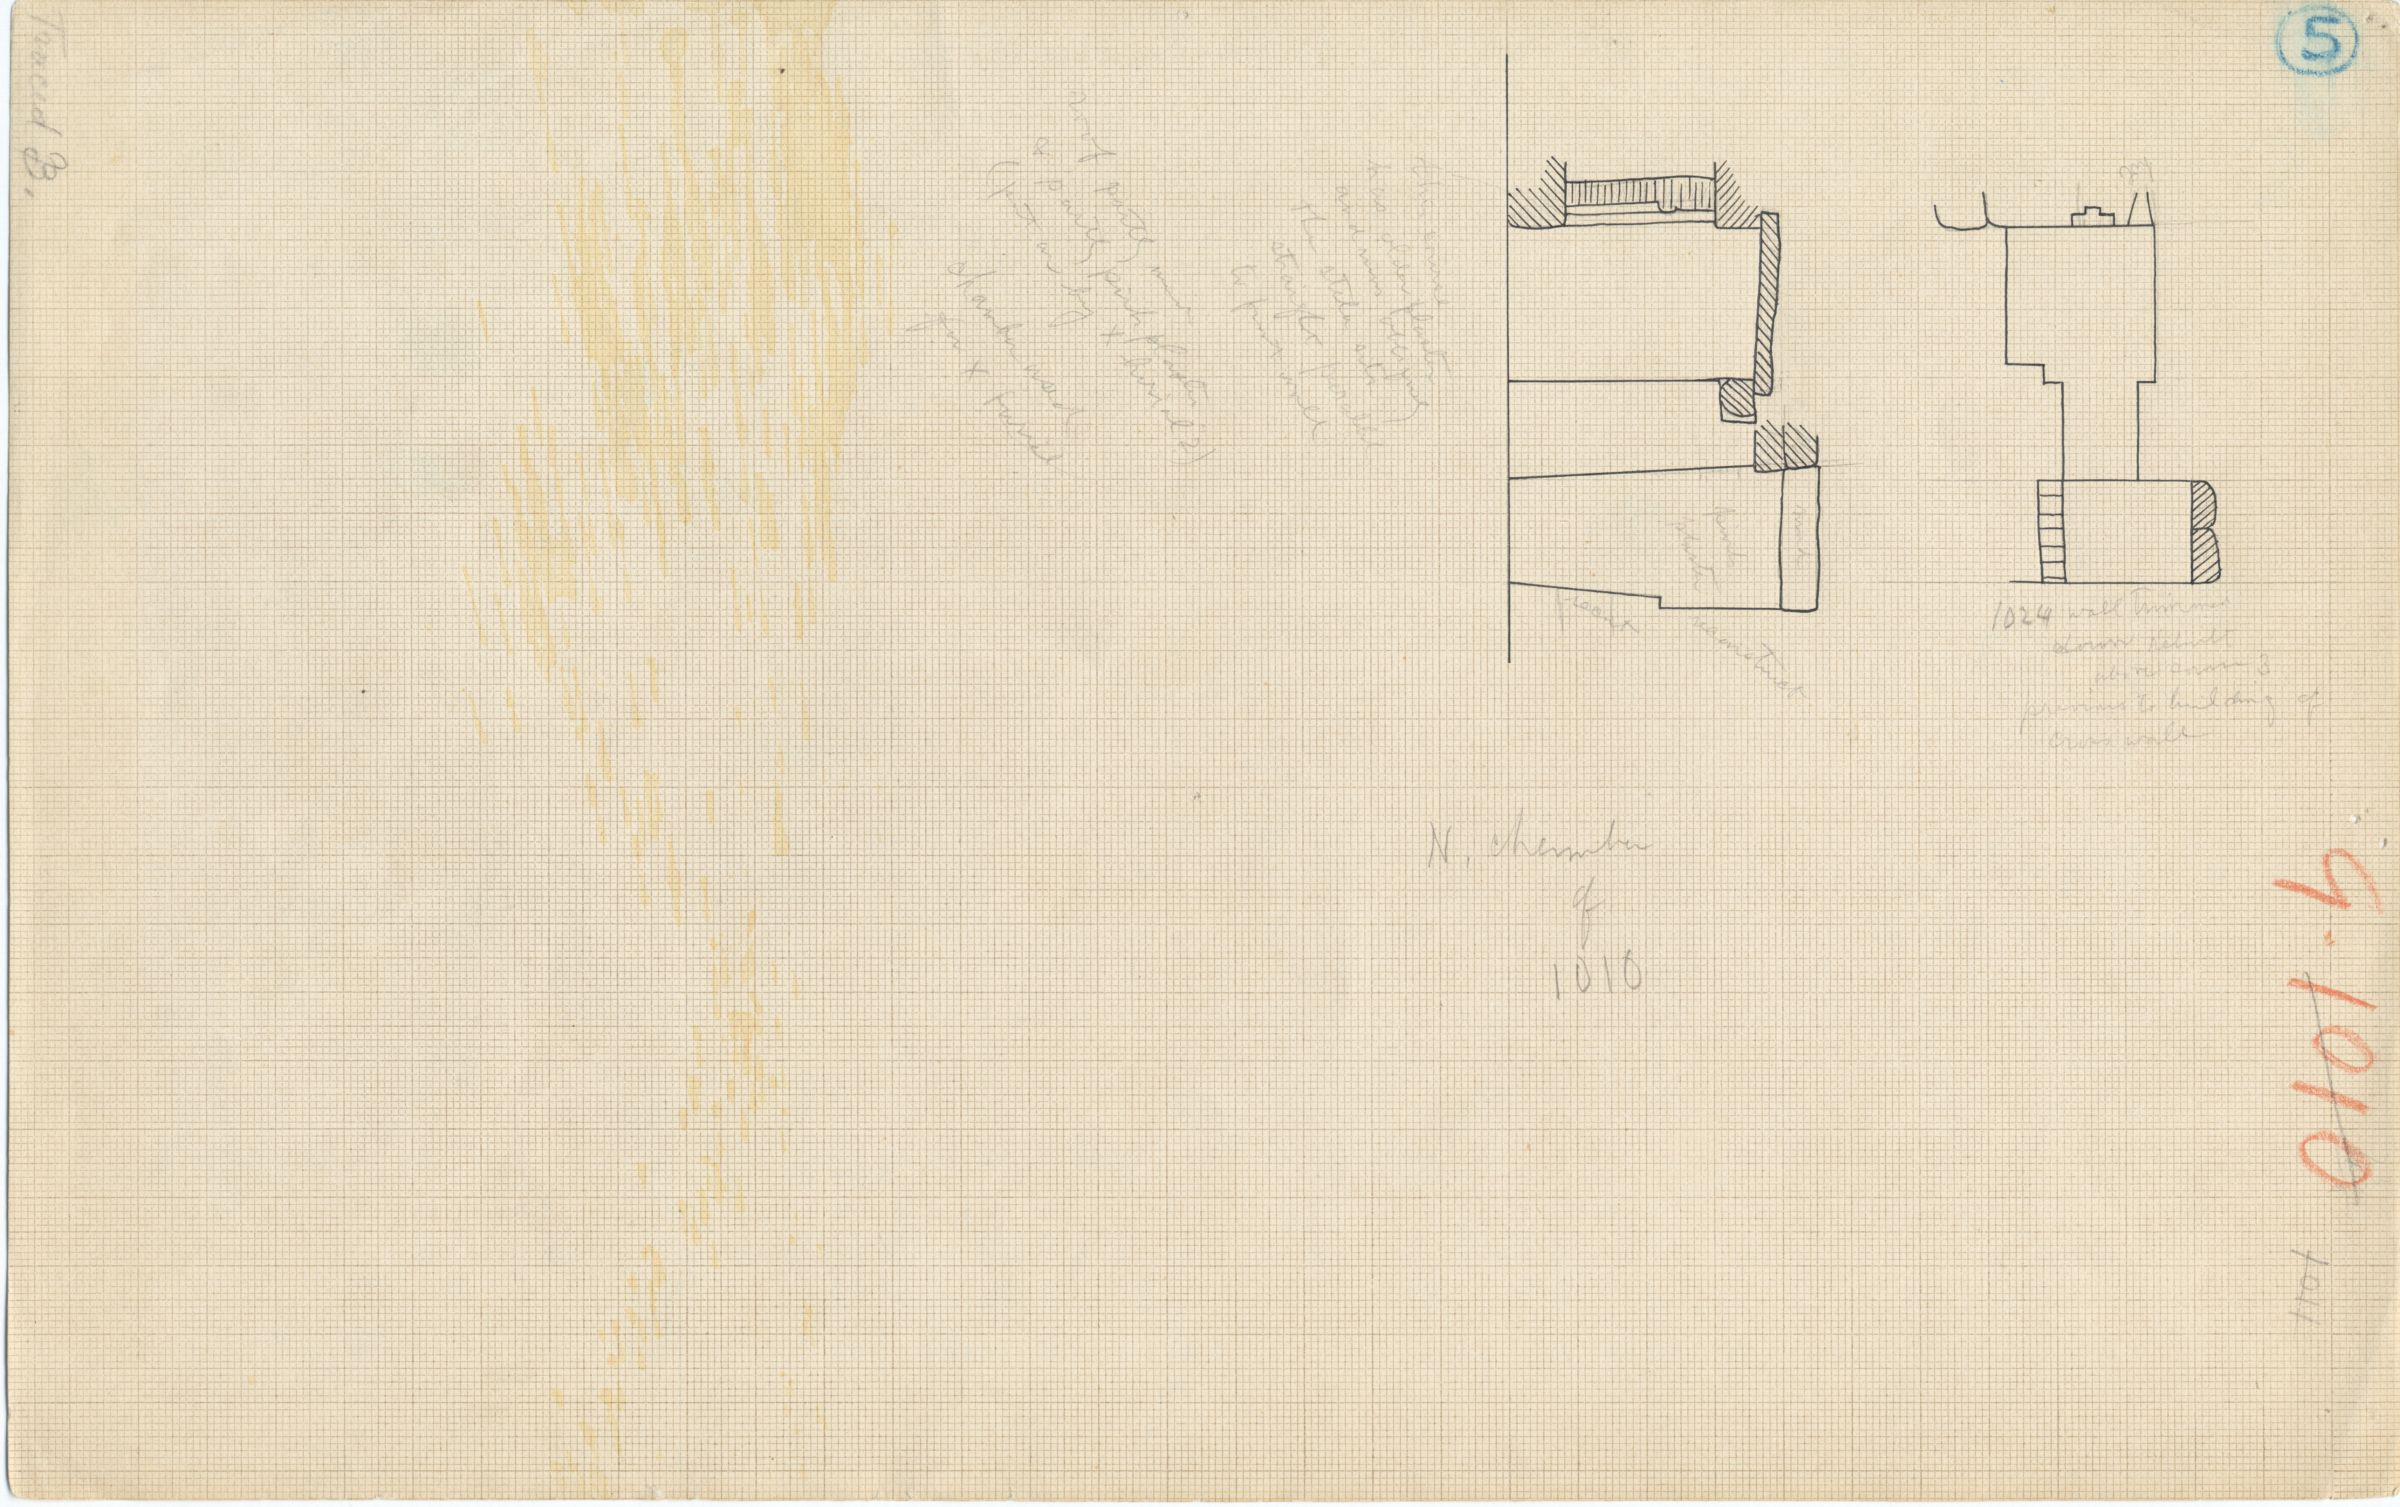 Maps and plans: Plan and section of G 1011, north chamber (chamber a), with position of G 1024